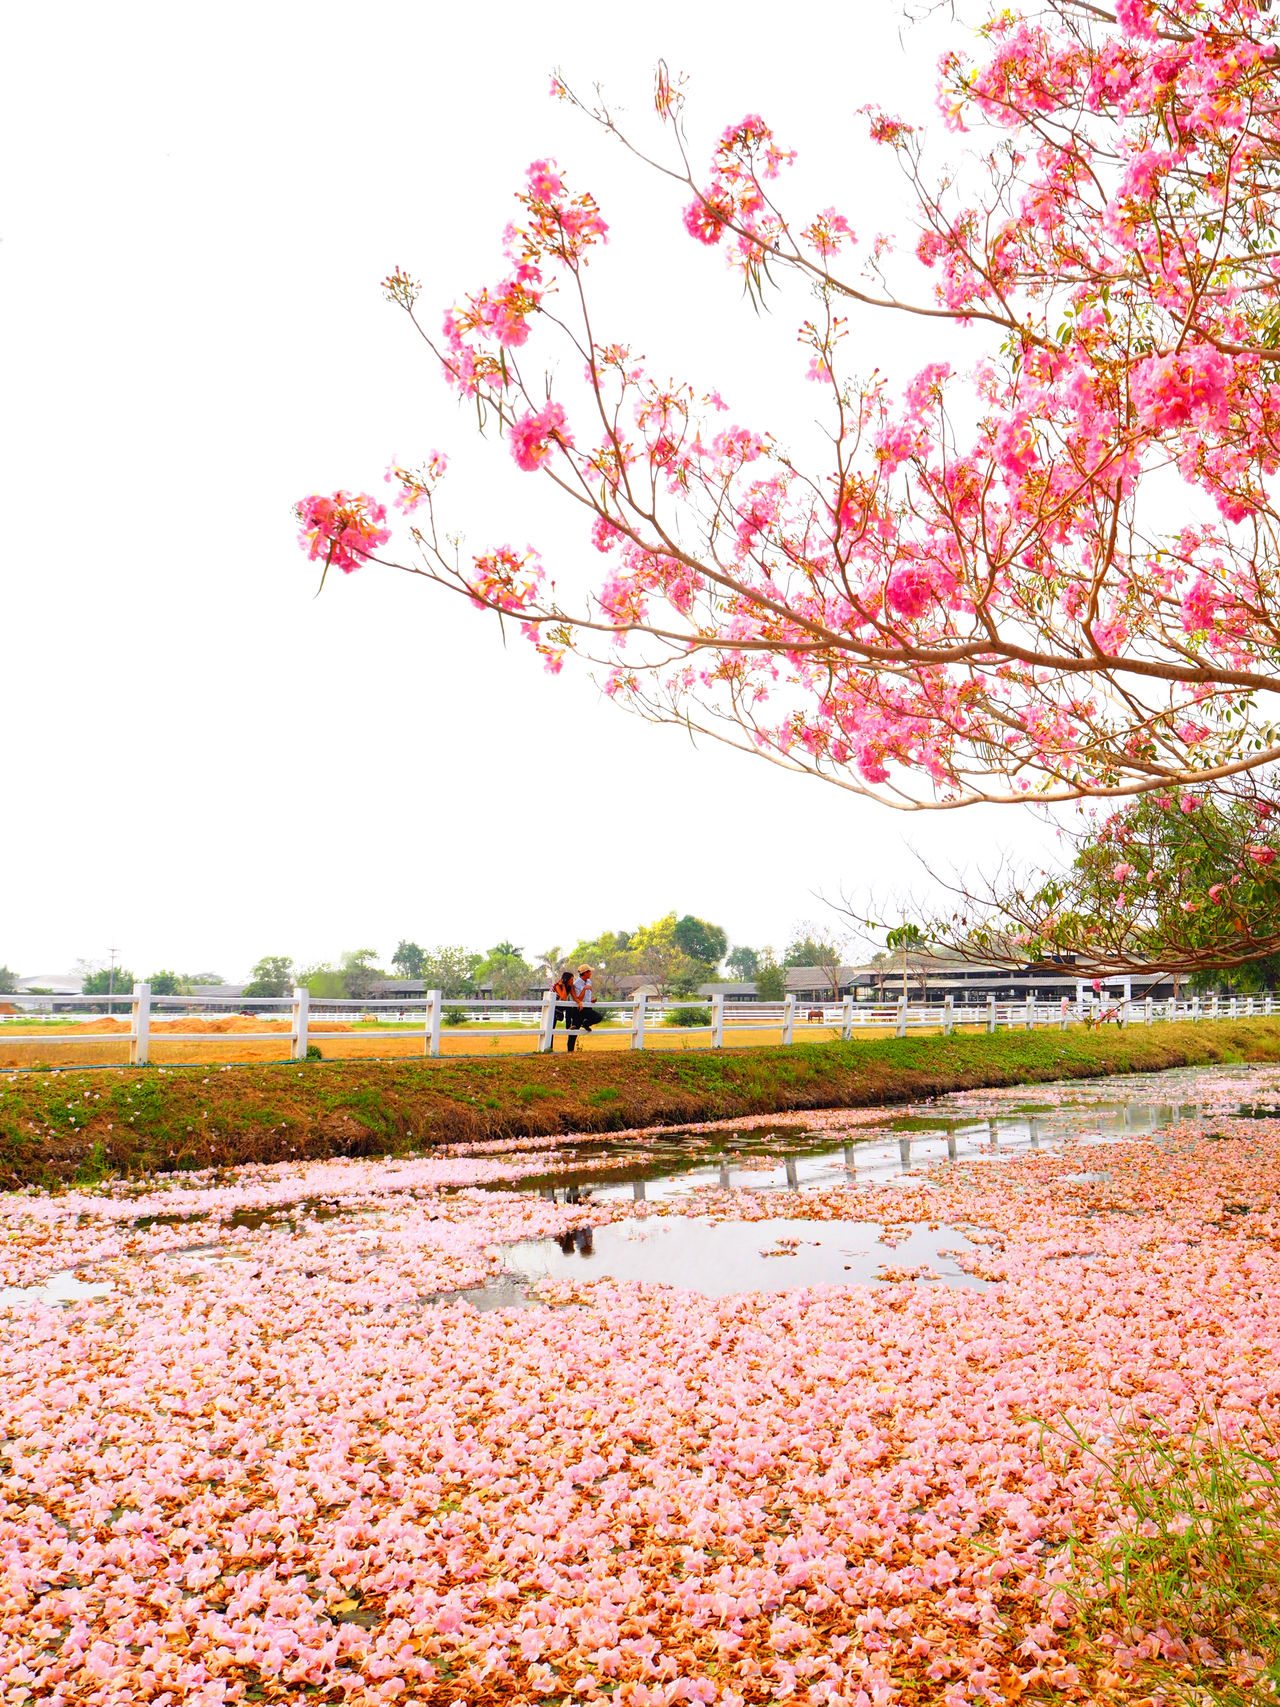 🌸Pink world🌸 Beauty In Nature Blooming Blossom Botany Feel The Journey Exceptional Photographs Spotted In Thailand Nature The Great Outdoors With Adobe Outdoors Landscapes Pastel Power Petal The Great Outdoors - 2016 EyeEm Awards Pink Color Pink Flower My Favorite Photo Color Palette Relaxing Moments Tadaa Community Thailand Travel Water Reflections Yeah Springtime! Everything In Its Place Millennial Pink